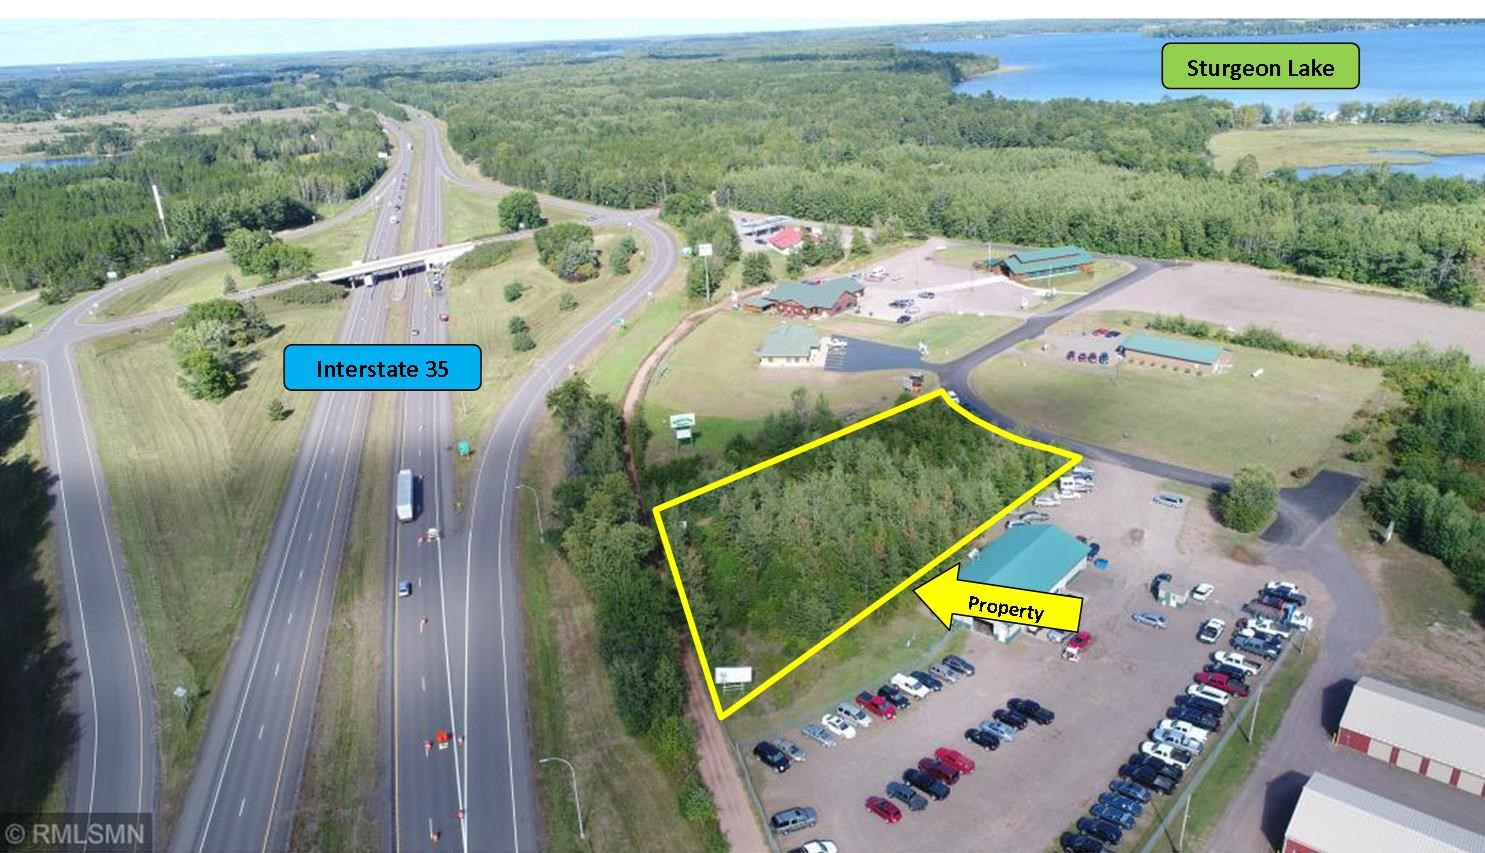 Commercial Lot for Sale with Frontage on Interstate 35, MN